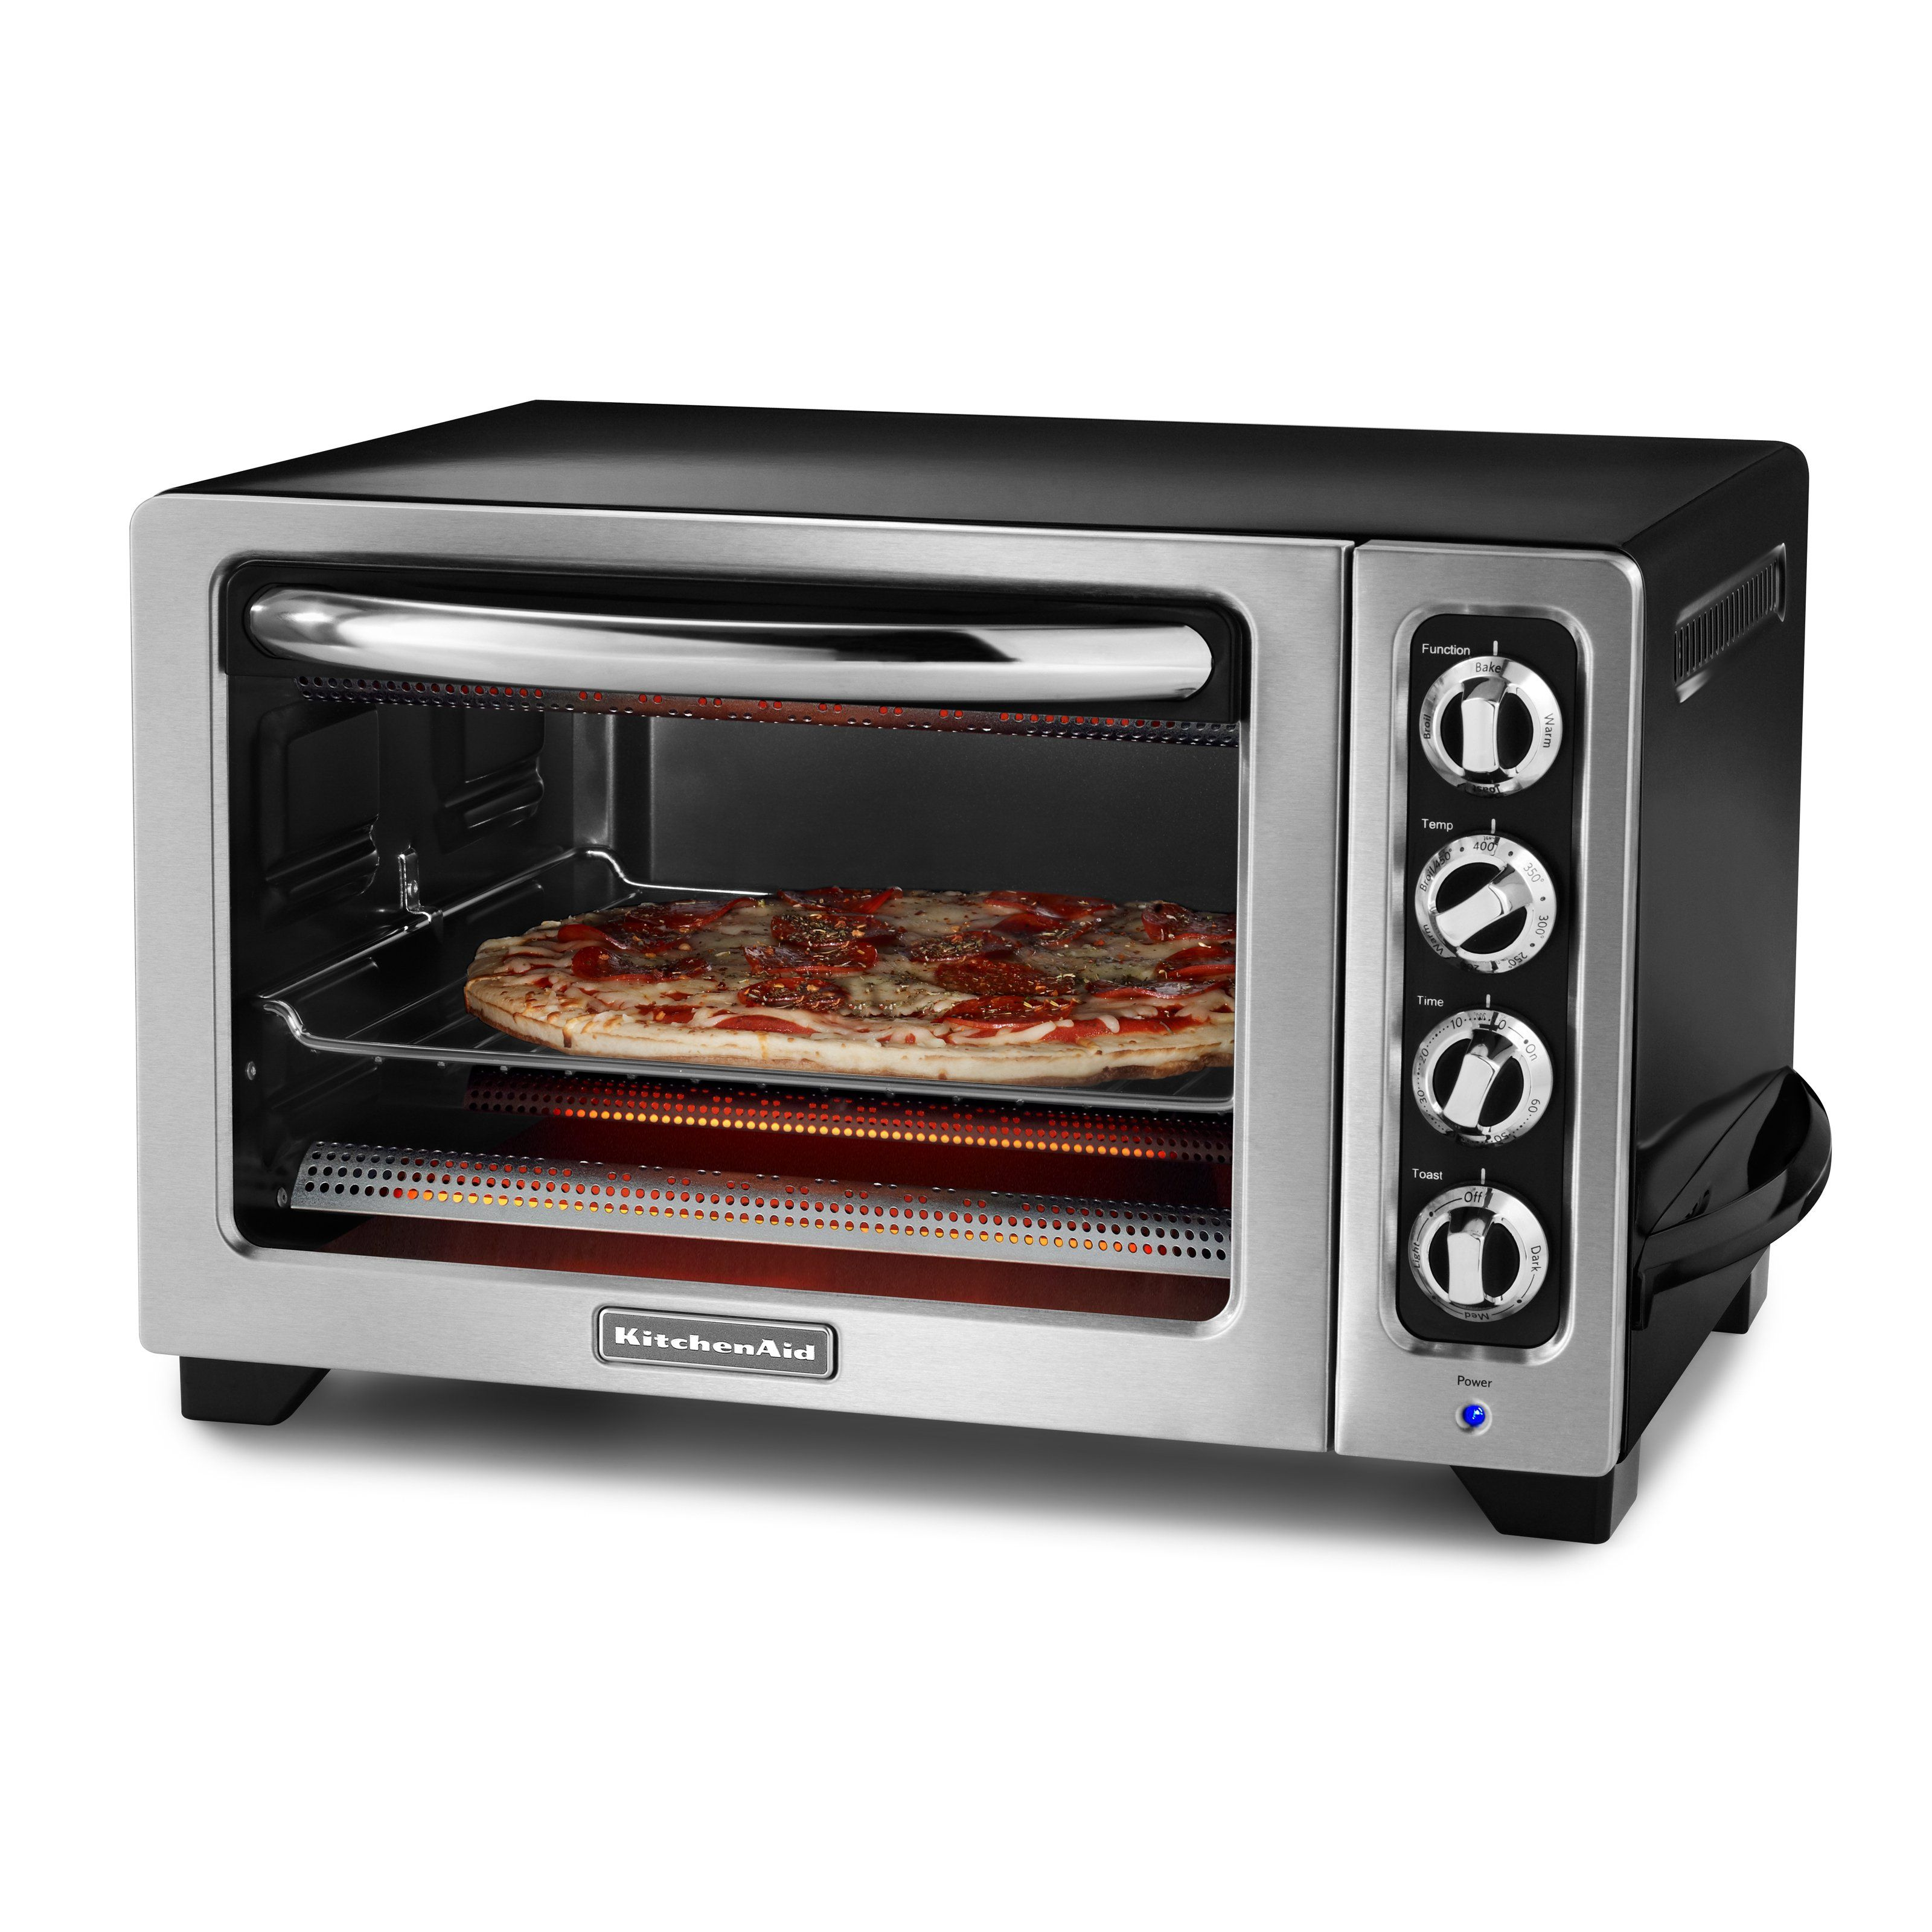 parts of convection toaster reviews oven kitchenaid digital awesome kcoob countertop